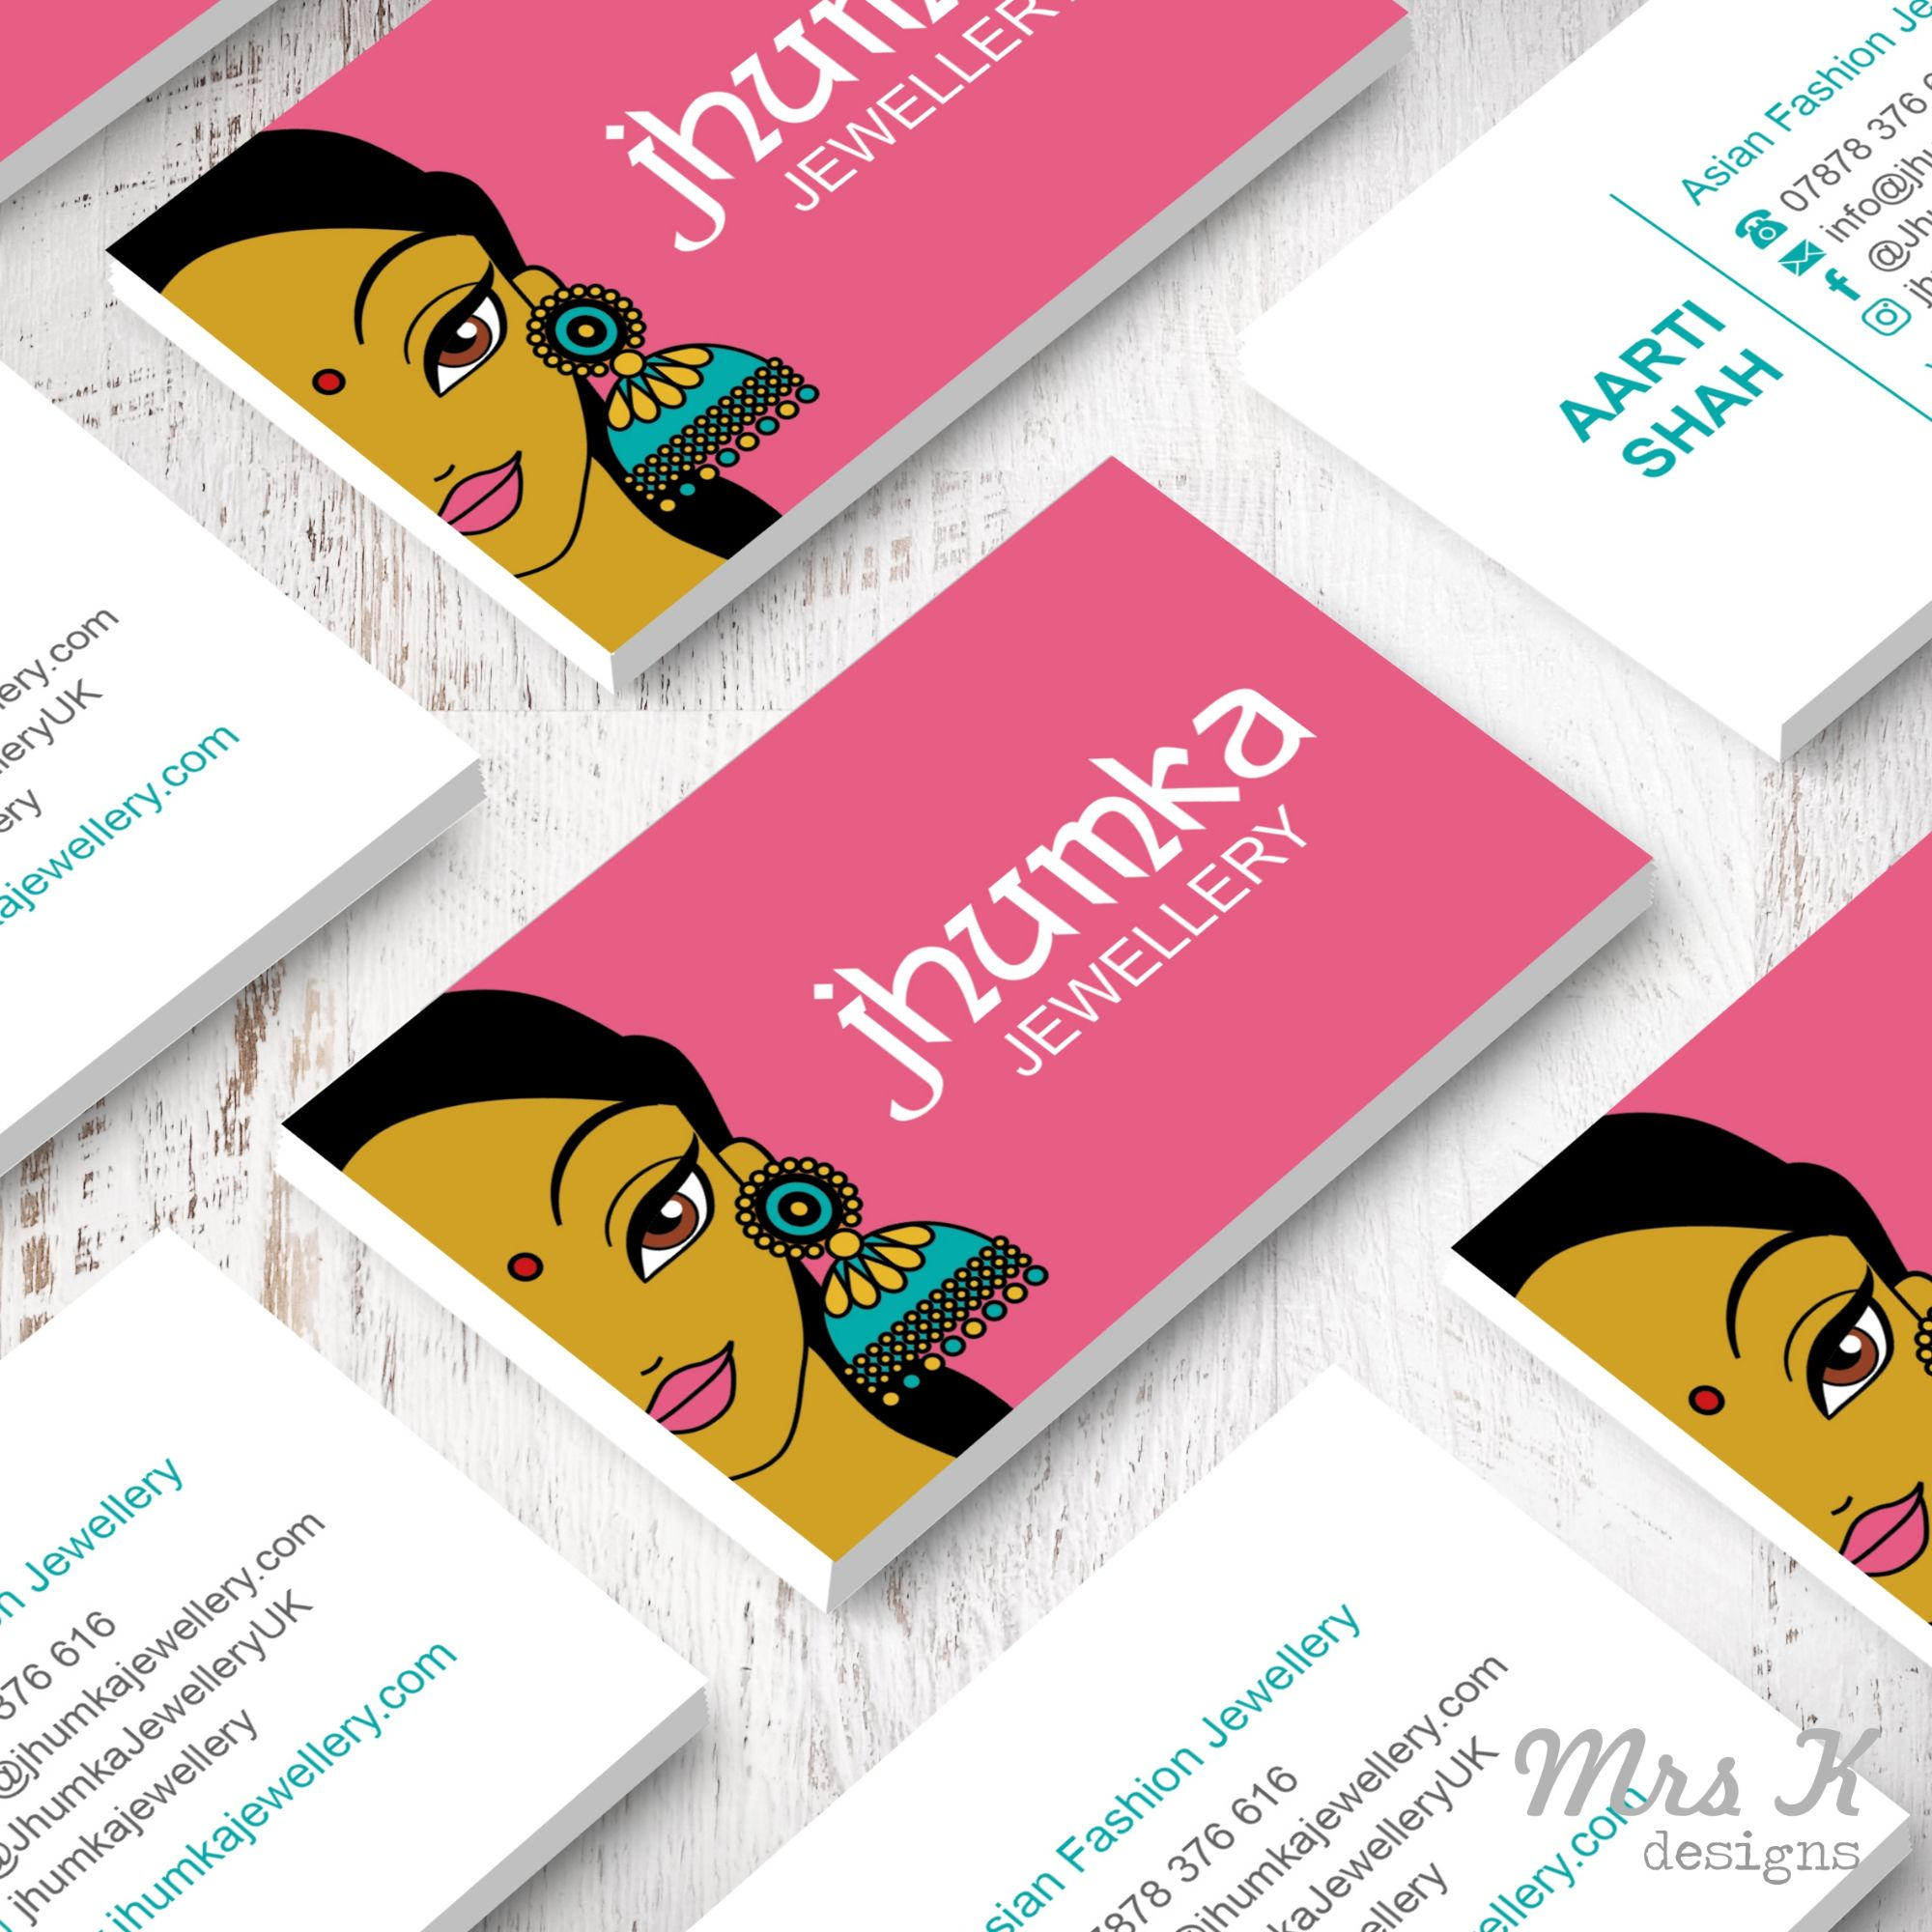 JJ Business Cards